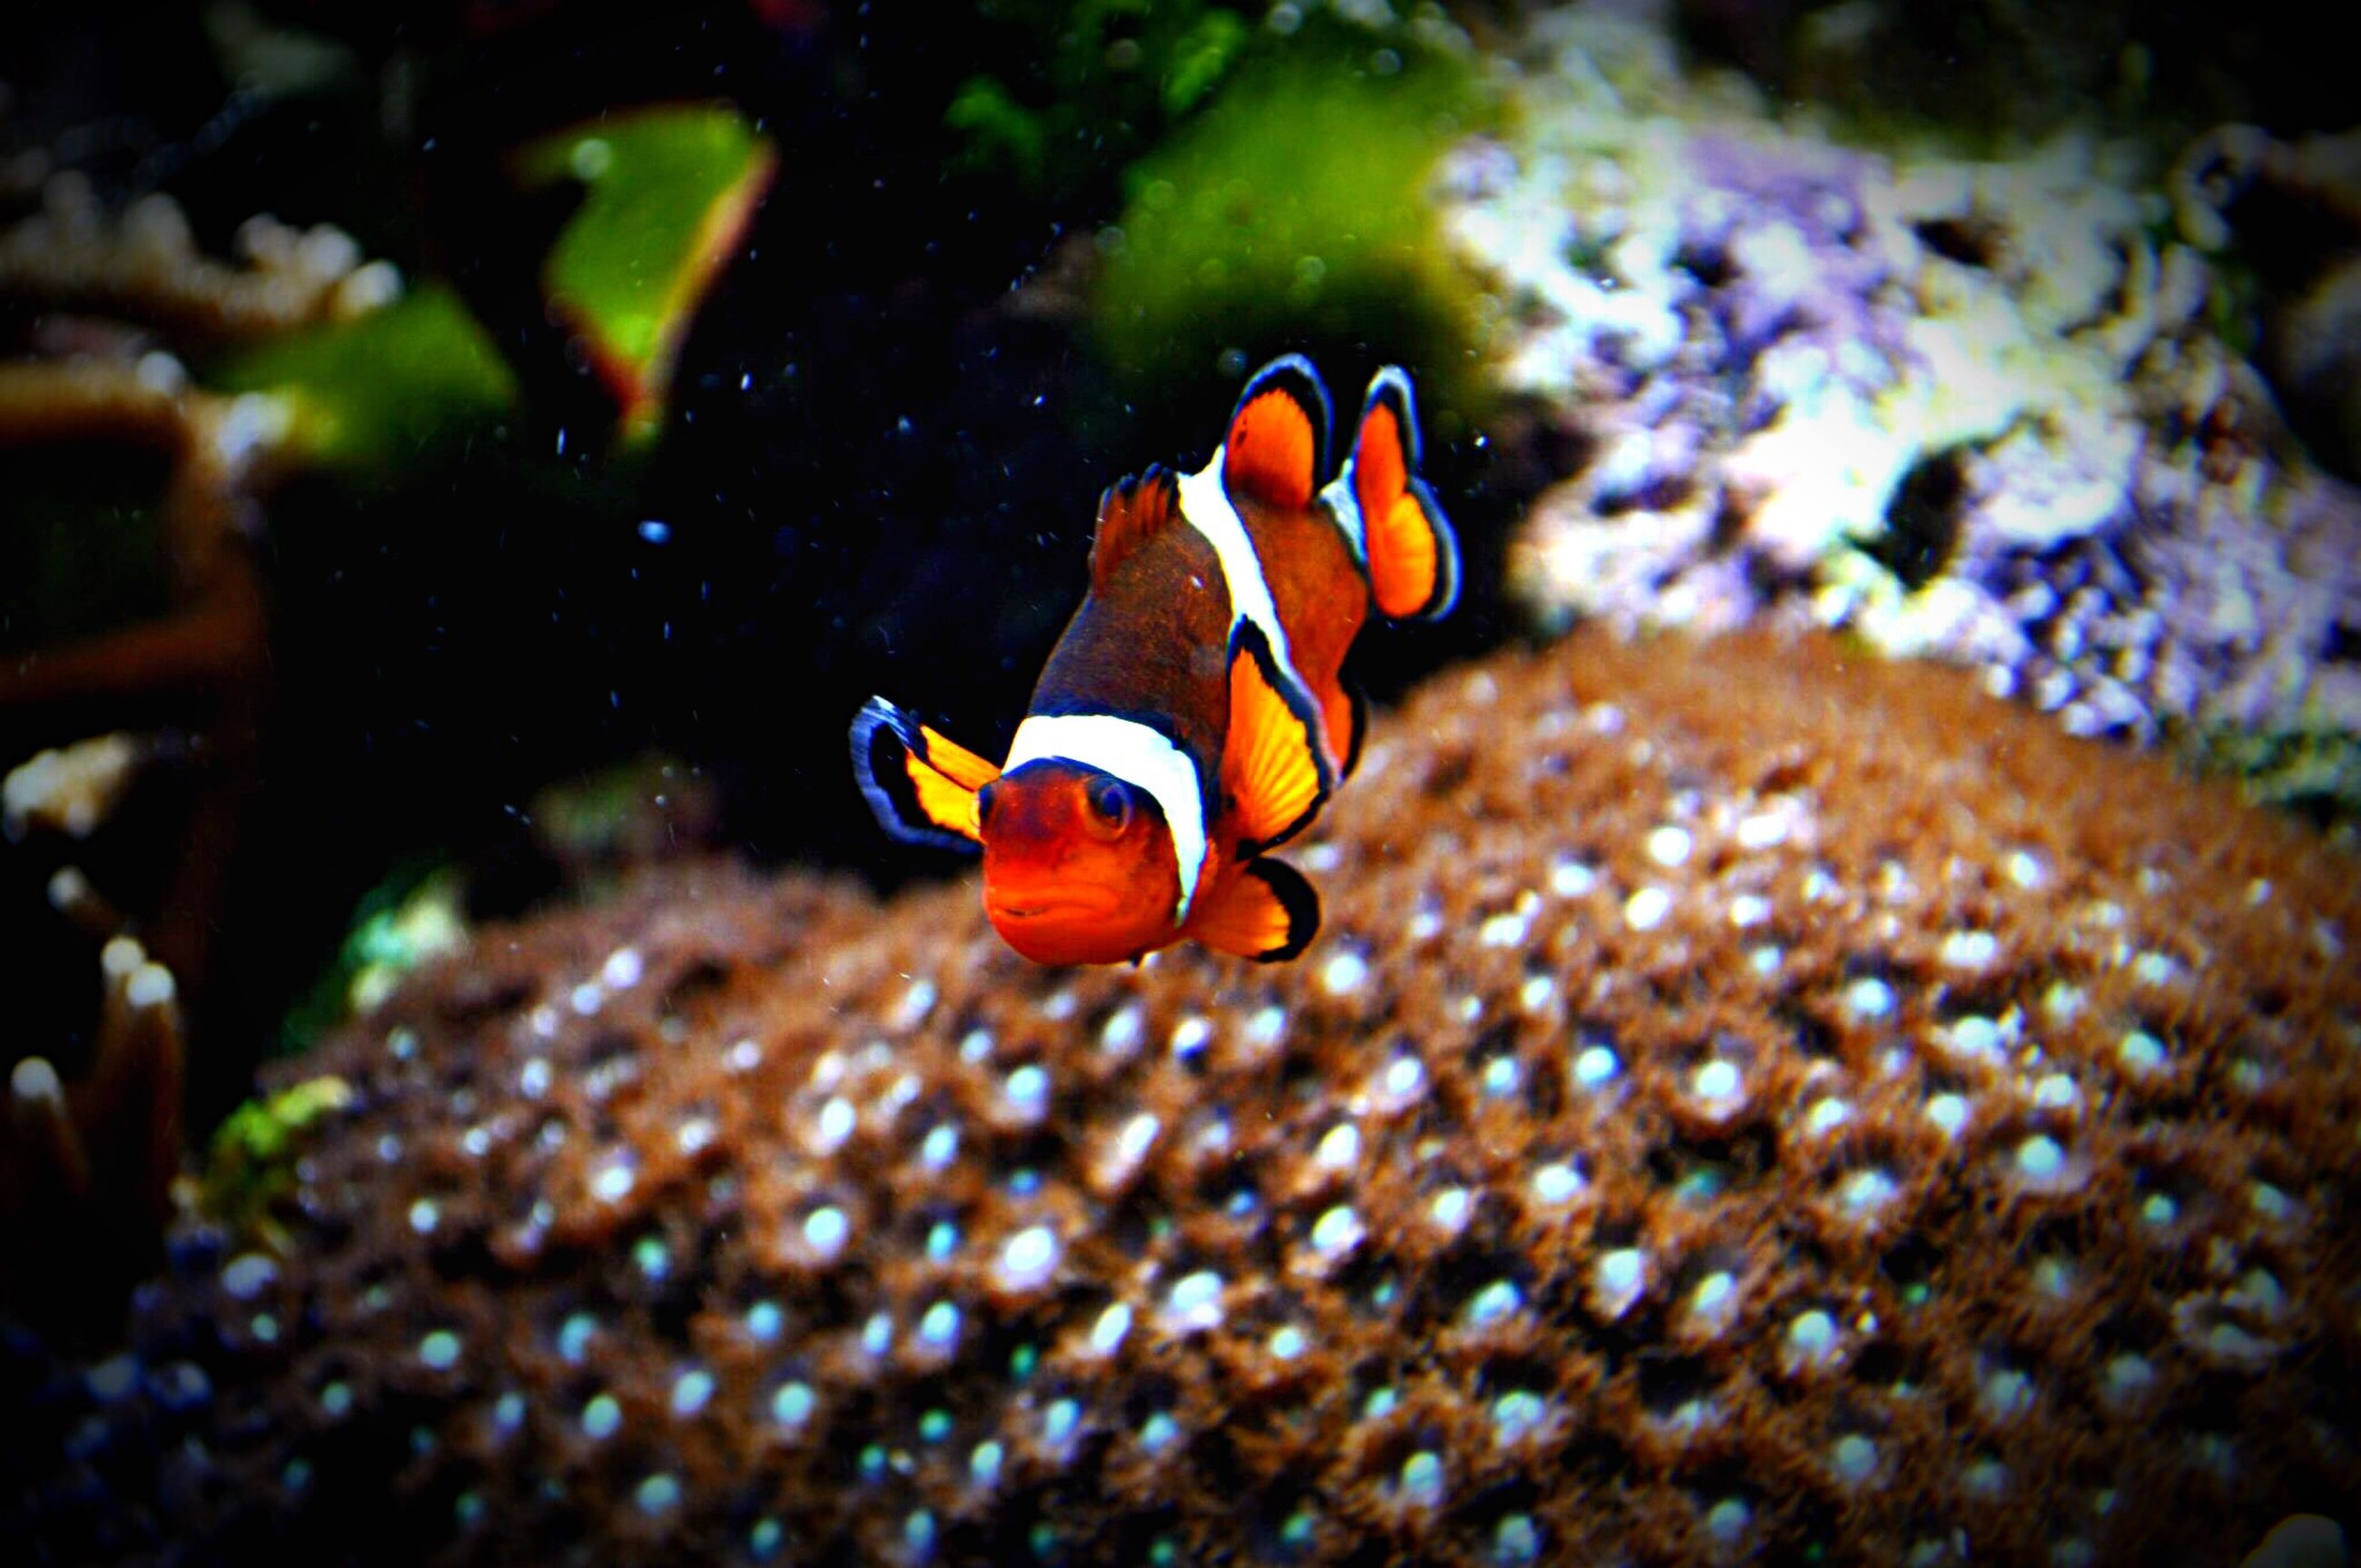 fish, underwater, clown fish, animal themes, swimming, sea life, animals in the wild, sea, undersea, water, aquarium, close-up, sea anemone, no people, day